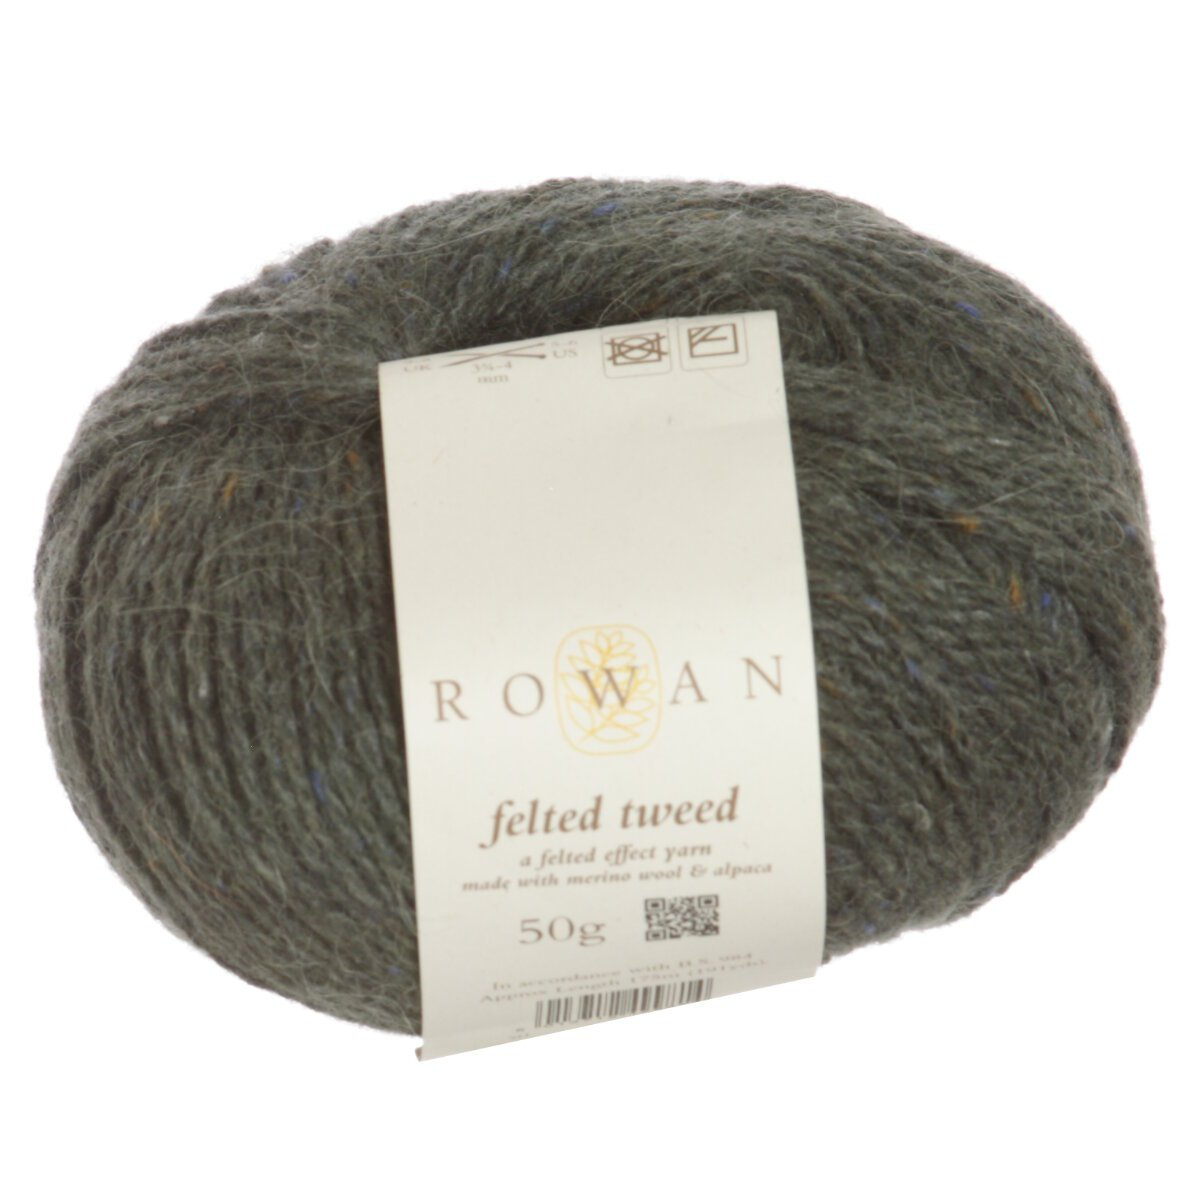 FELTED TWEED KH ANCIENT